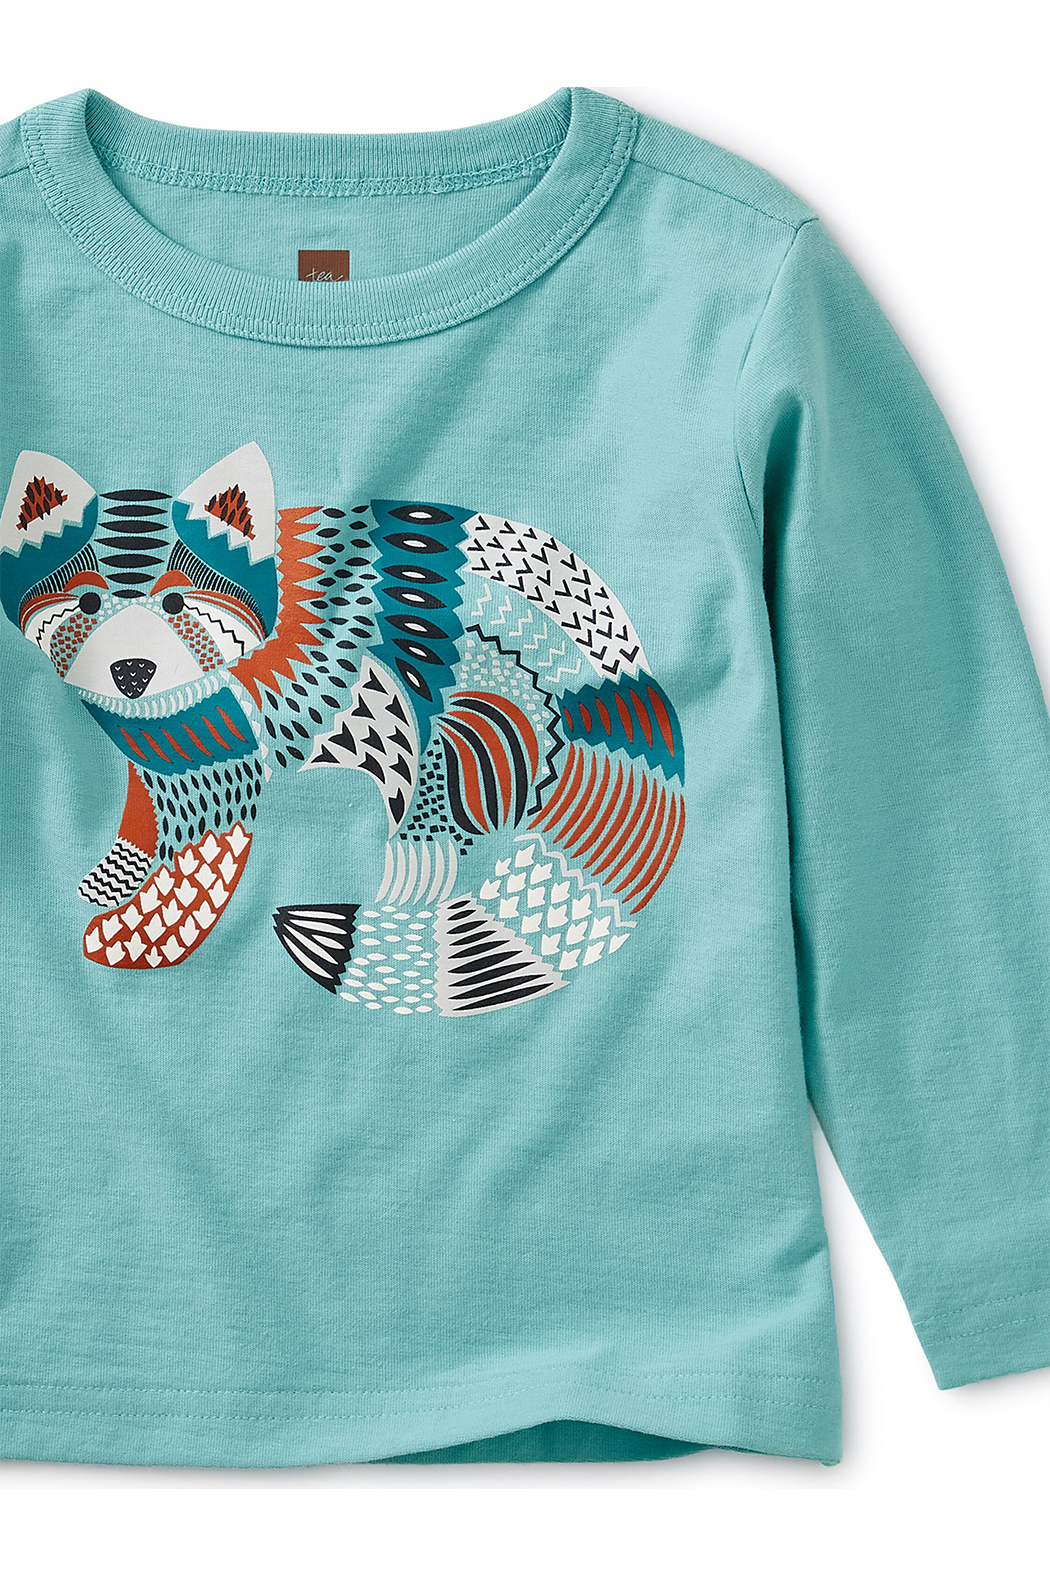 Tea Collection Red Panda Graphic Baby Tee - Front Full Image